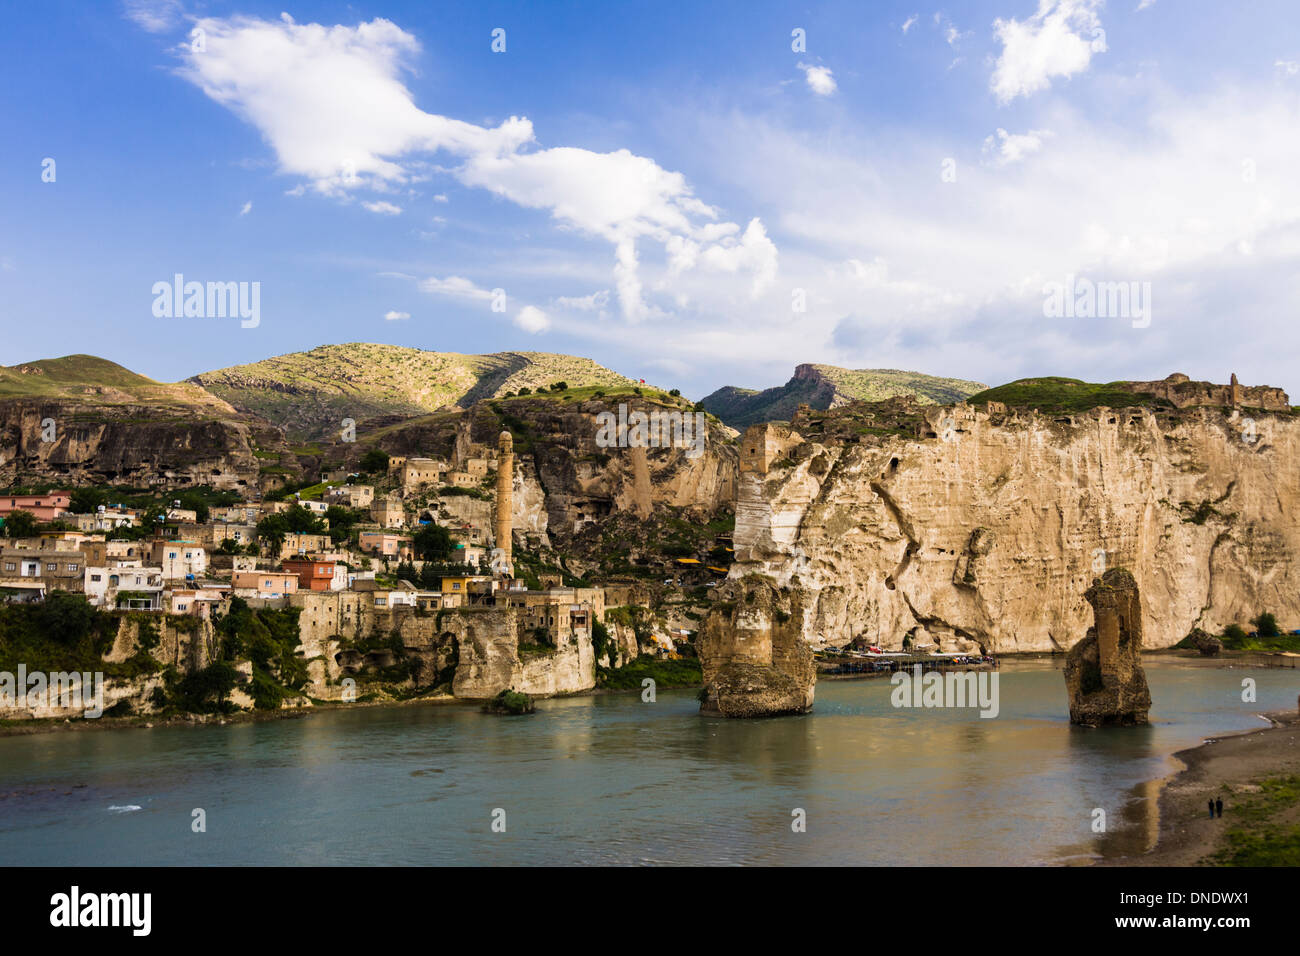 Hasankeyf, a historical Kurdish town by the Tigris river, threatened to vanish underwater - Stock Image